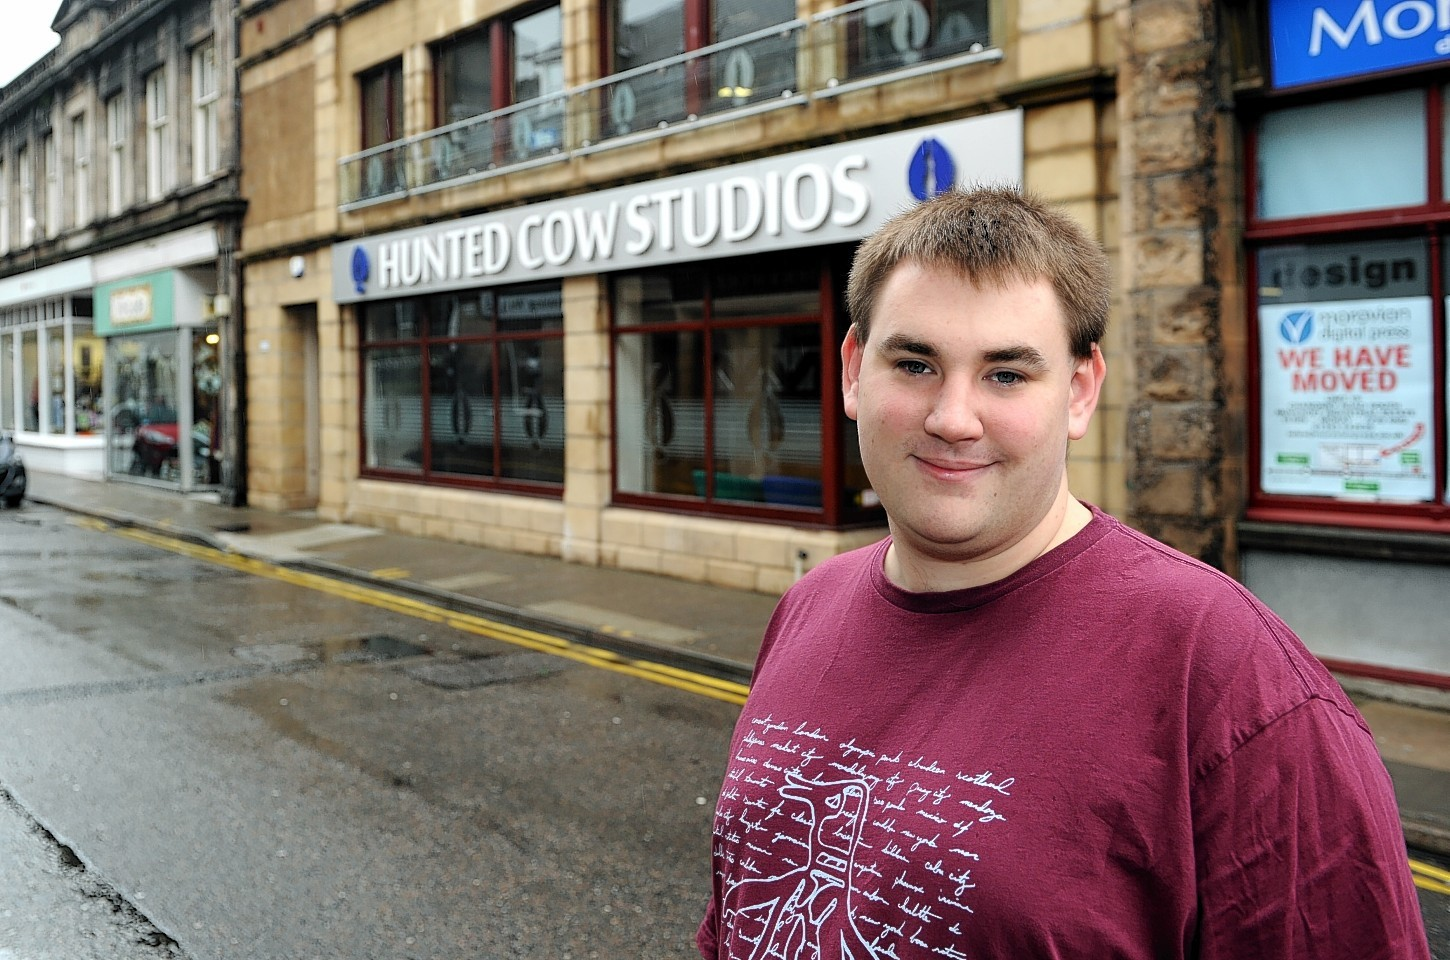 Andrew  Mulholland of Hunted Cow looks forward to Moray Game Jam 2015